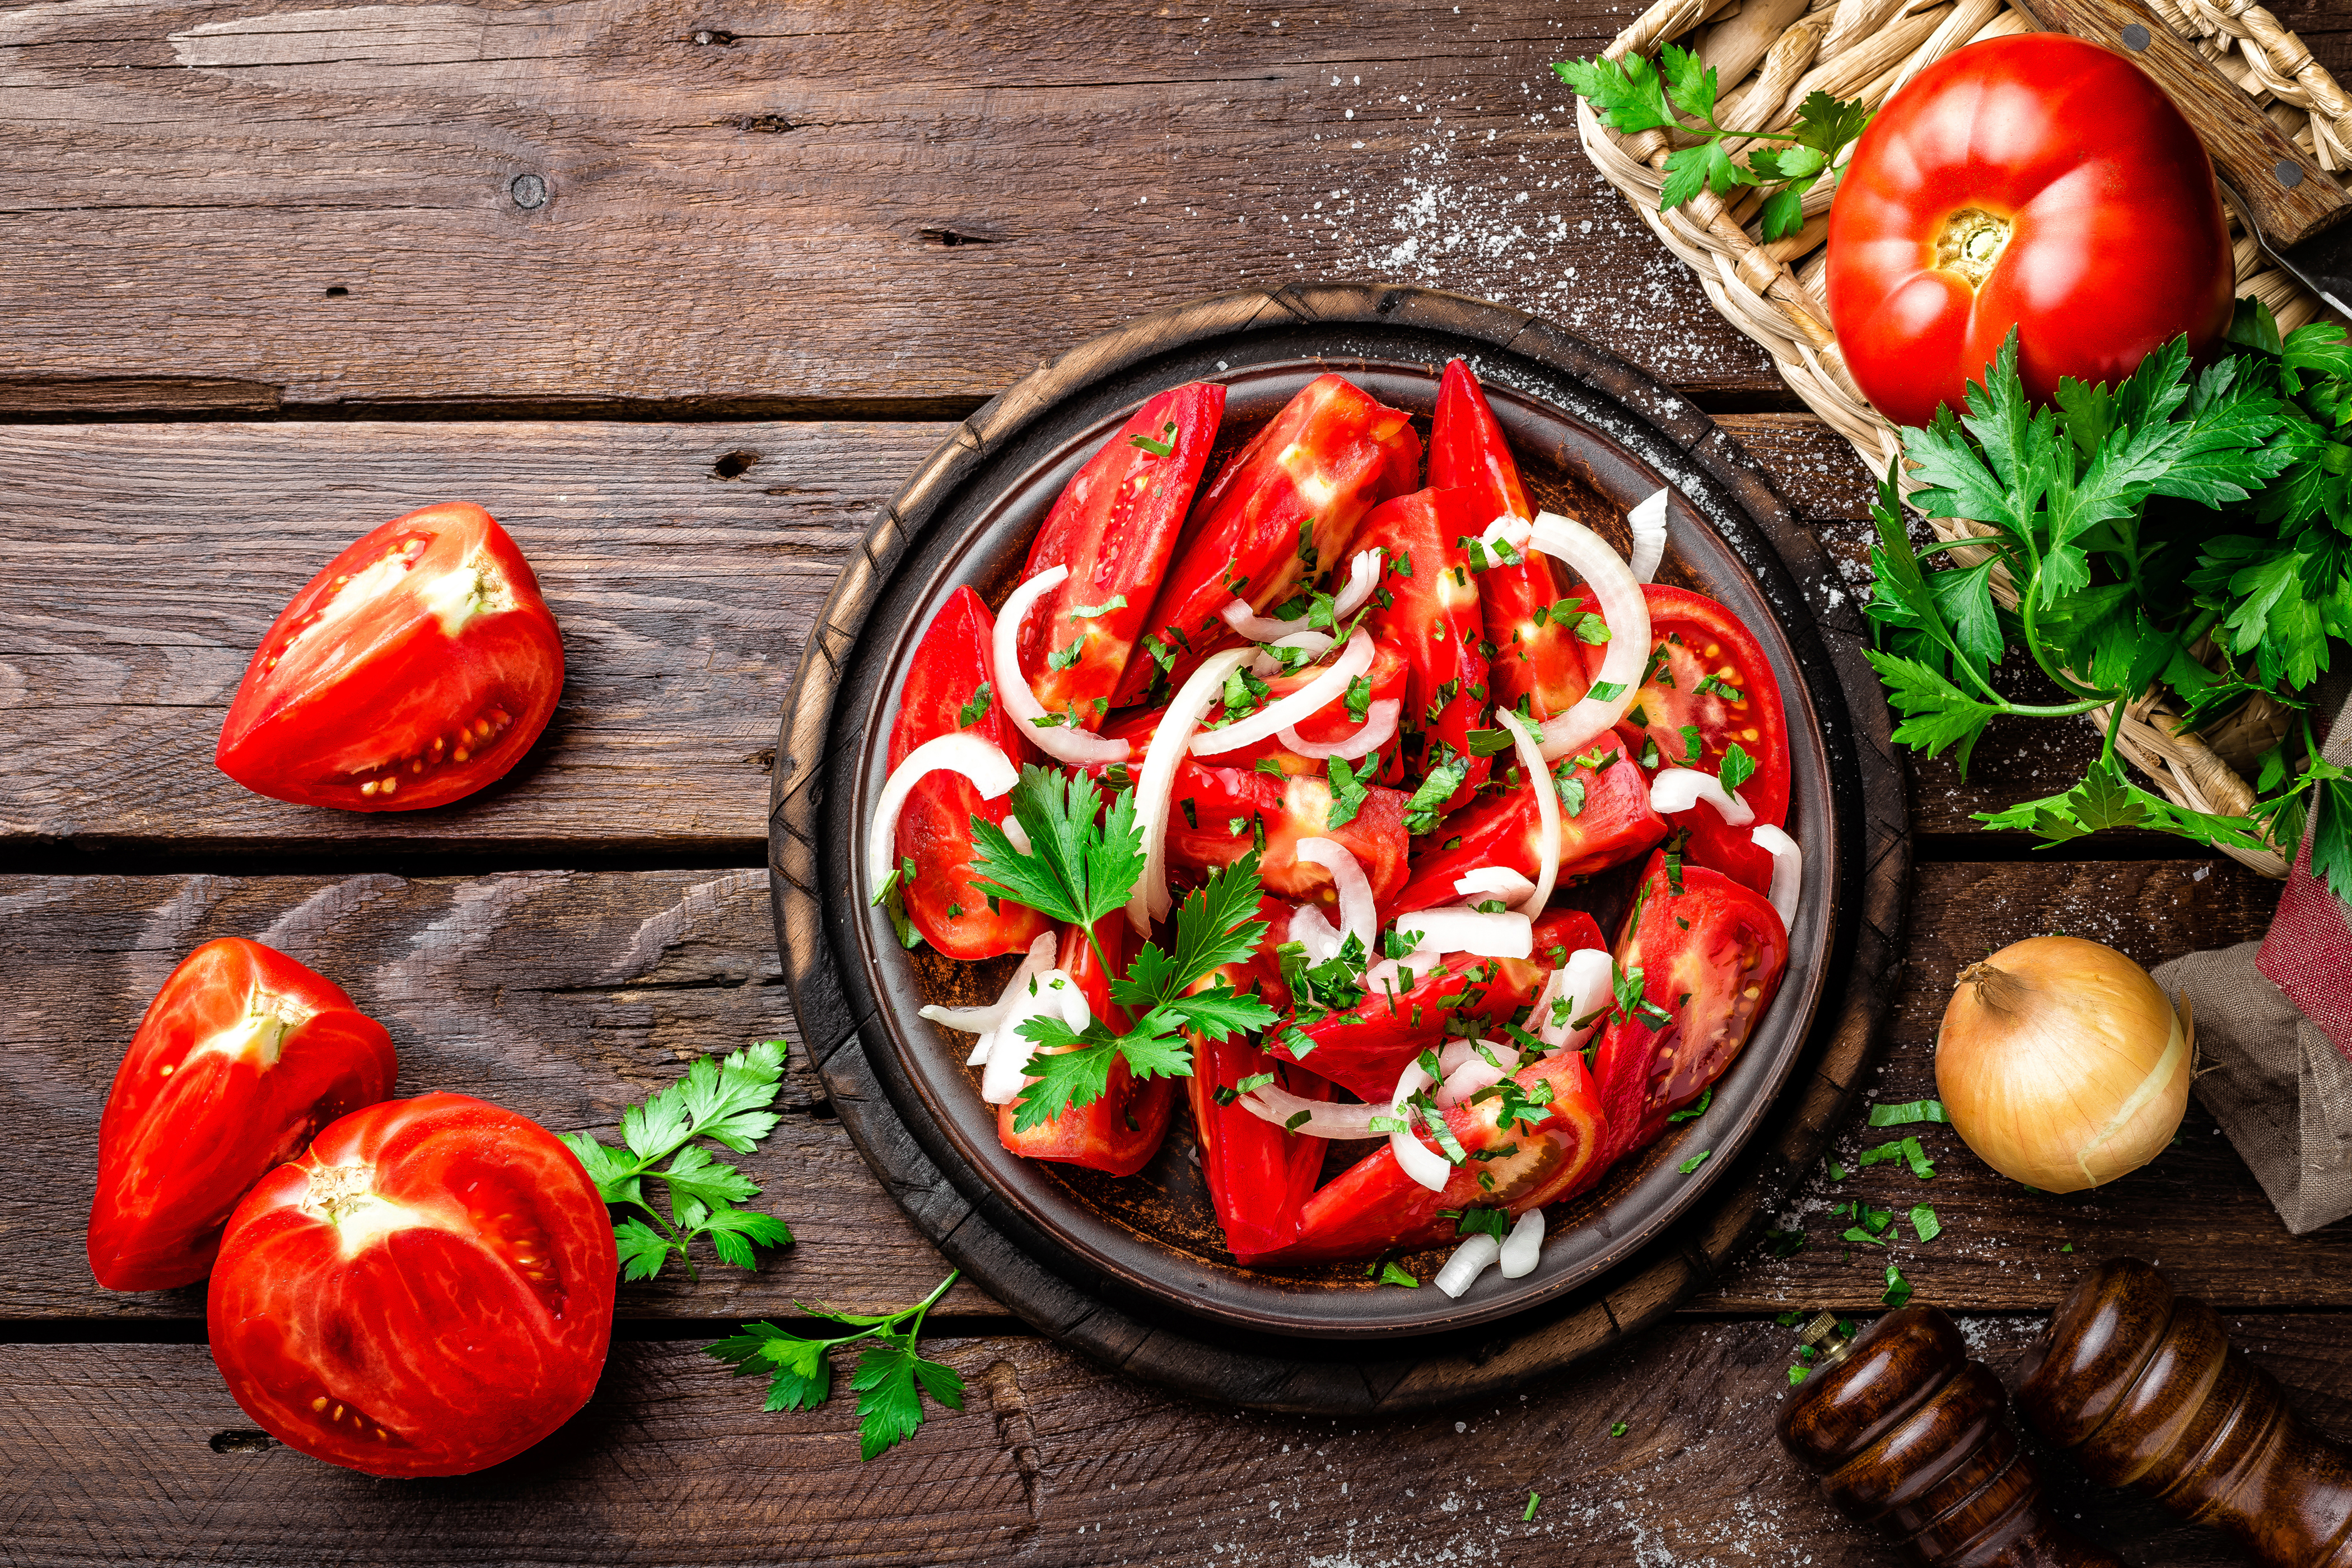 Images Tomatoes Food Salads Vegetables Wood planks 4200x2800 boards